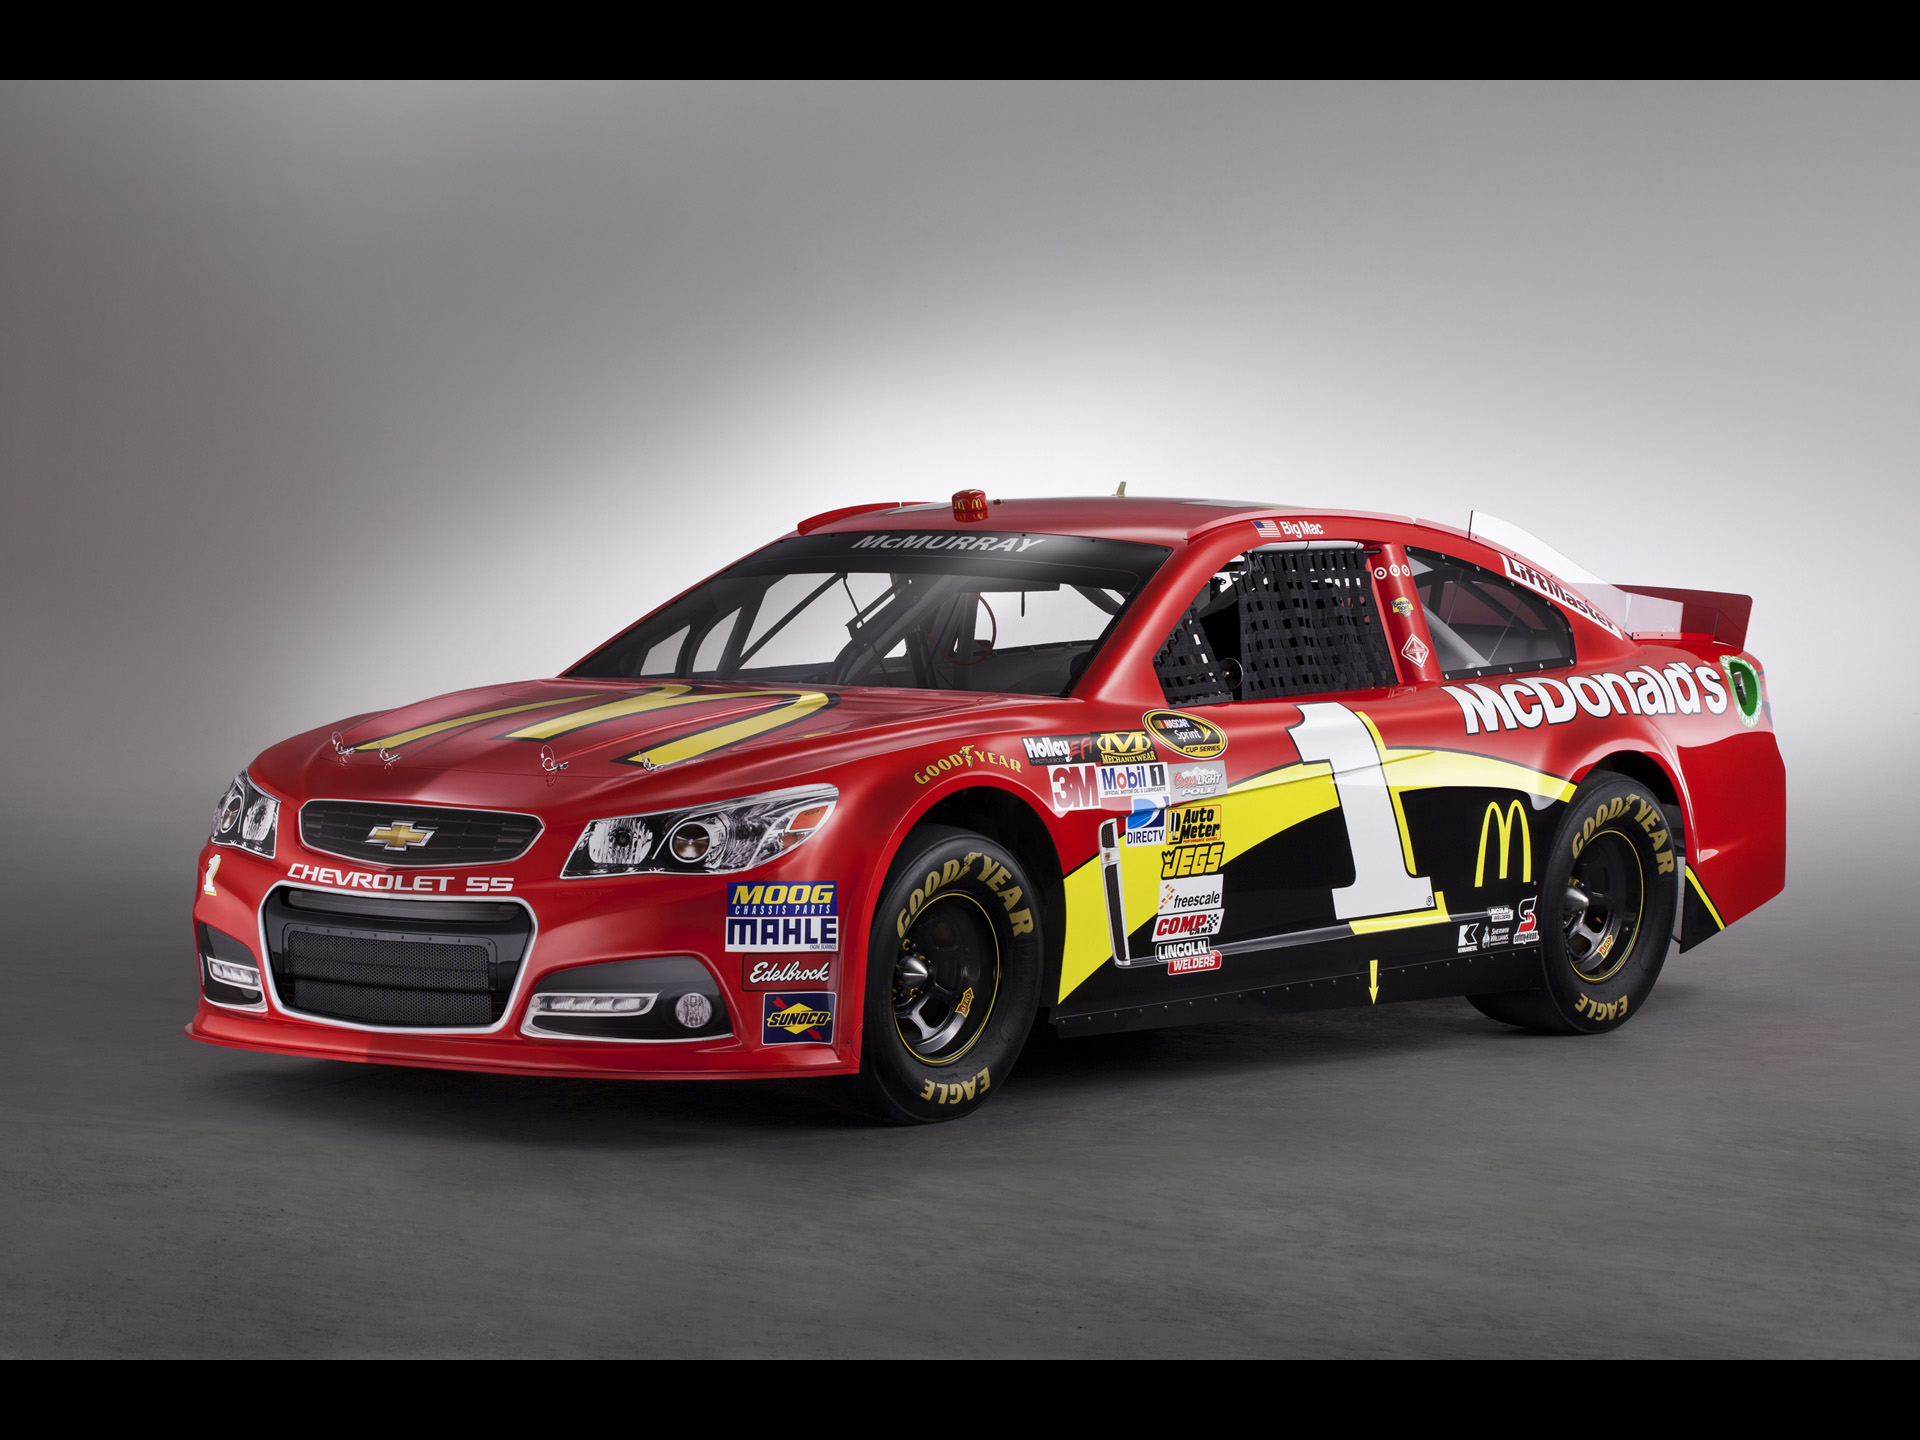 2013 Chevrolet NASCAR SS Race Car   Studio 7   1920x1440   Wallpaper 1920x1440